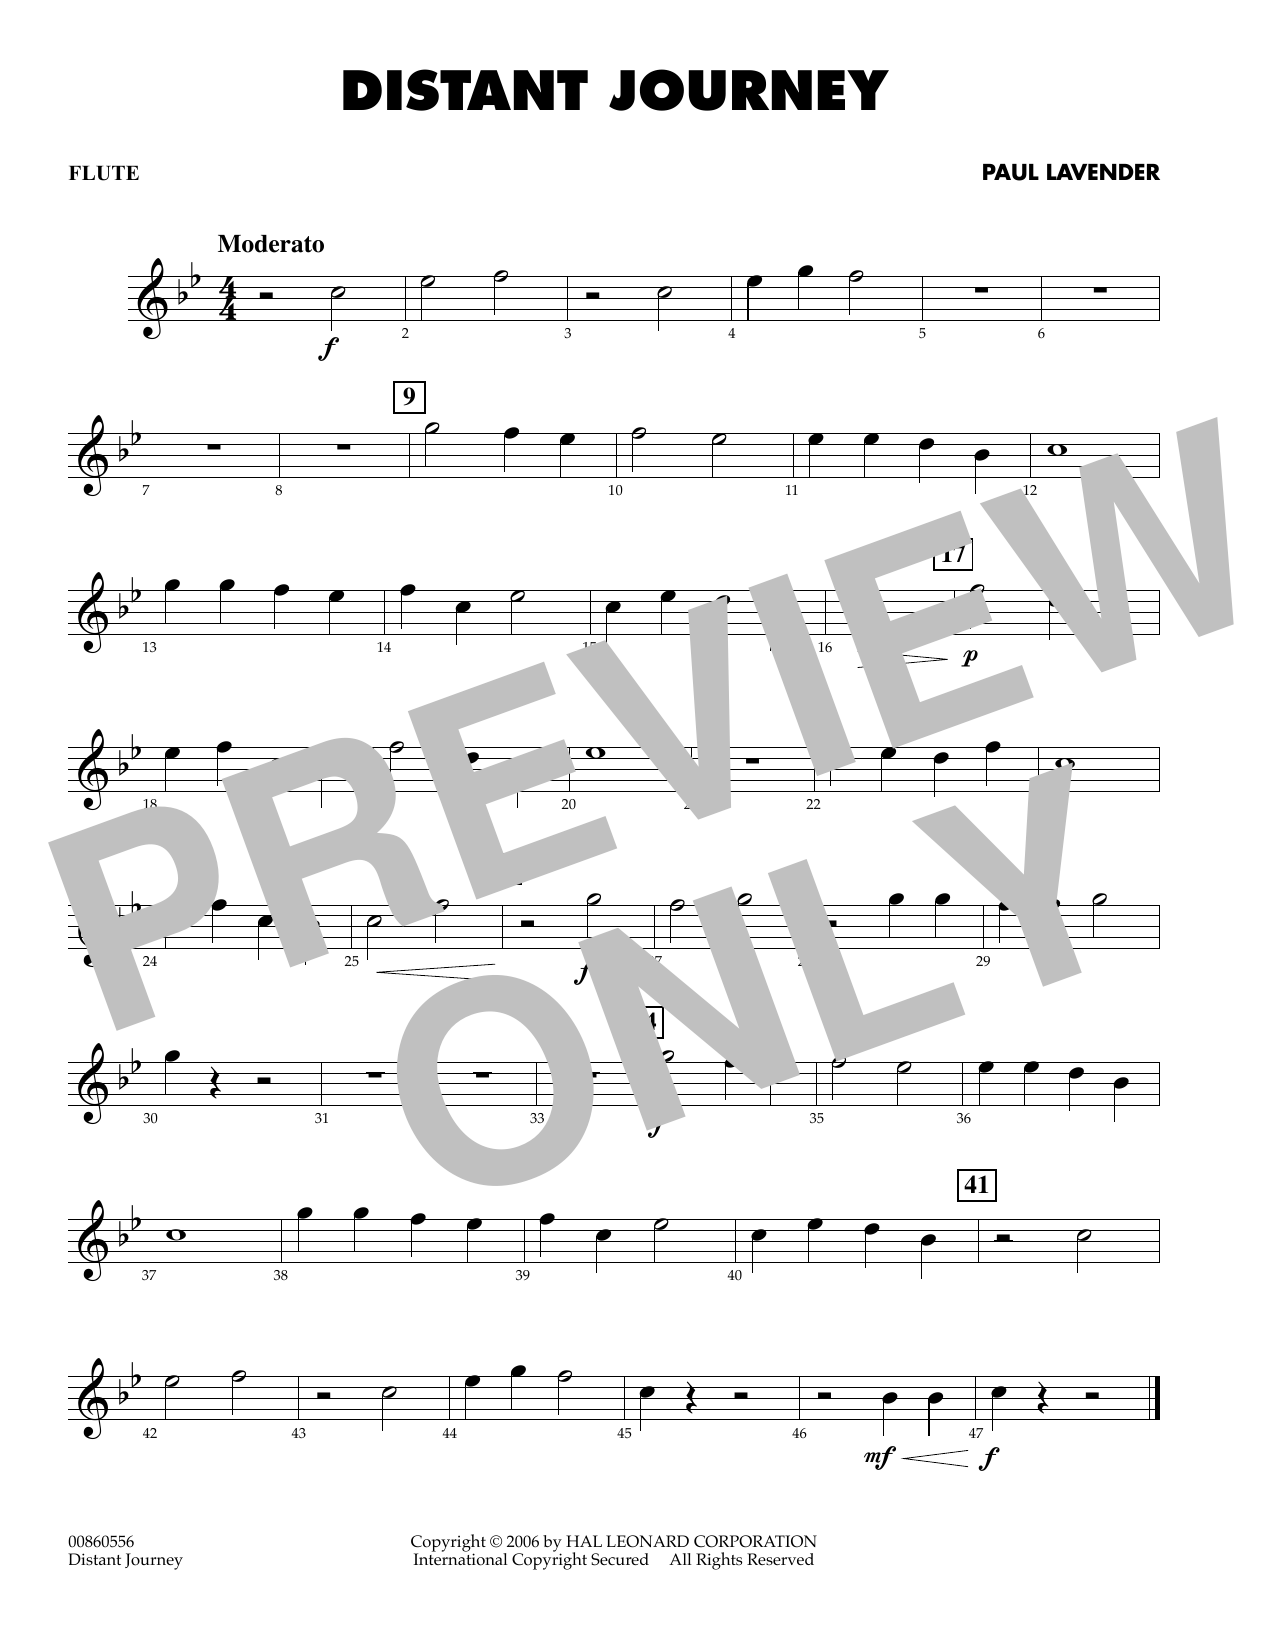 Paul Lavender Distant Journey - Flute sheet music notes and chords. Download Printable PDF.